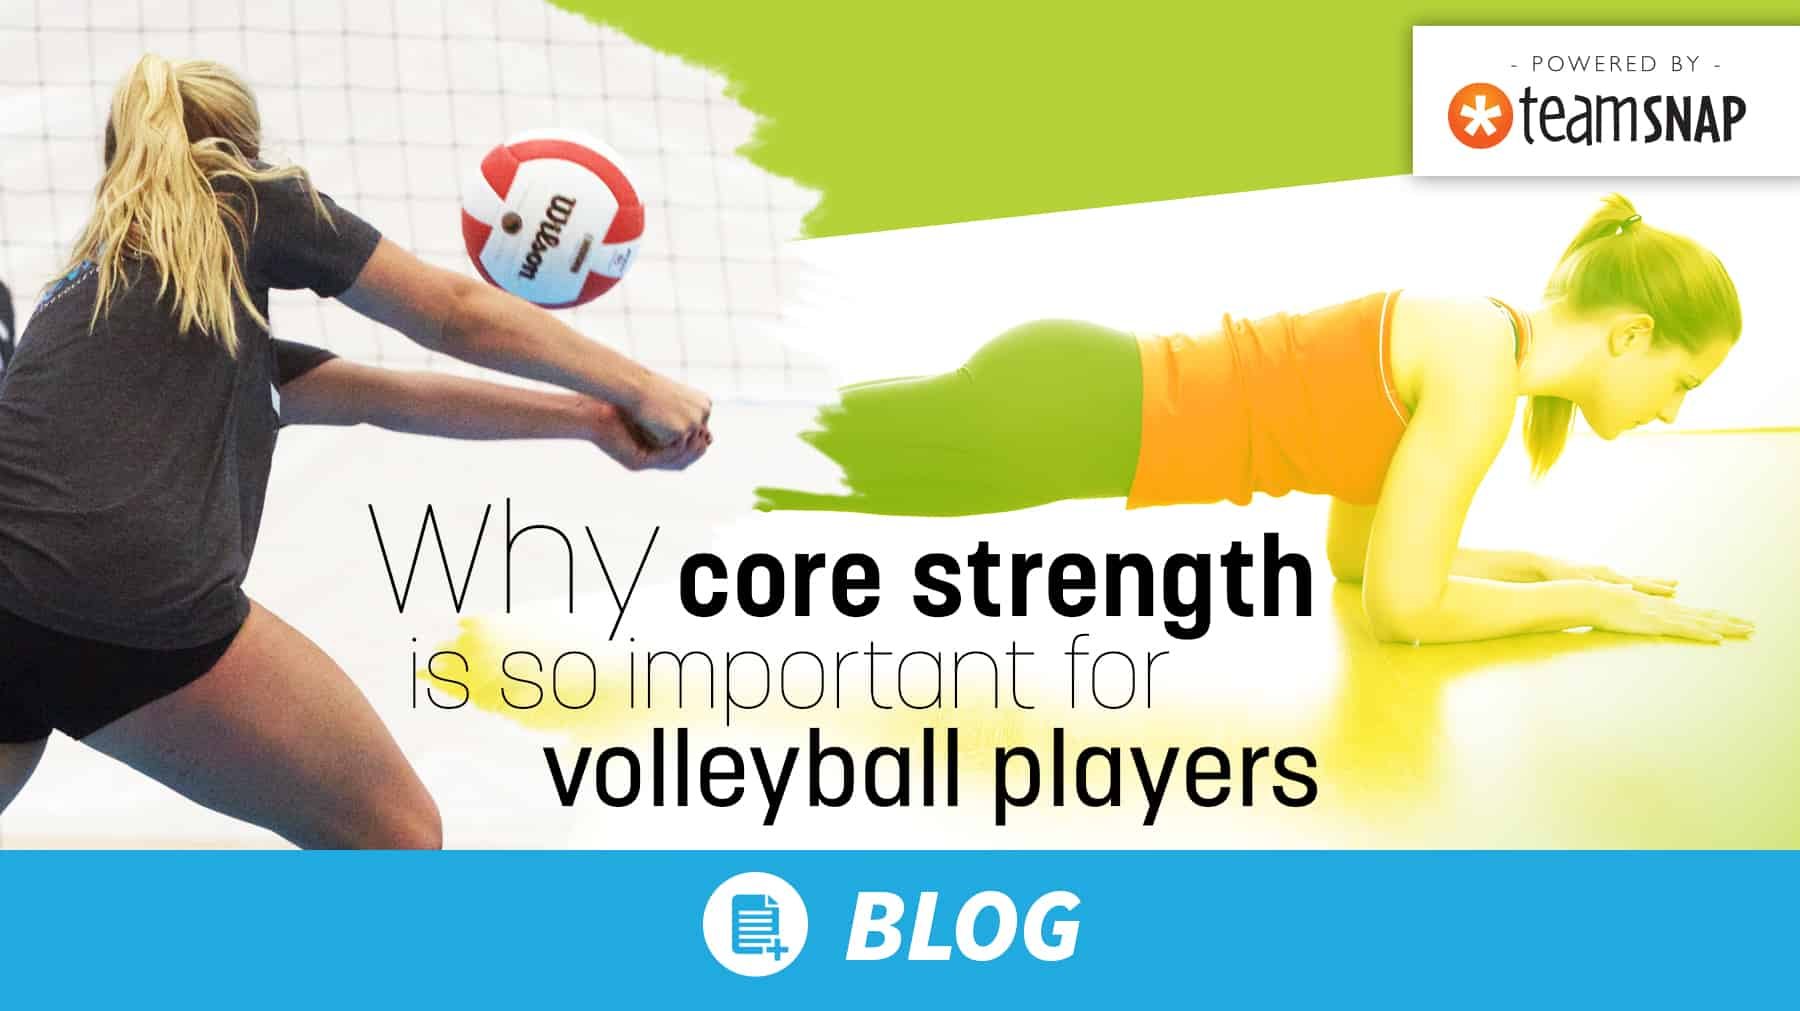 Why core strength is so important for volleyball players